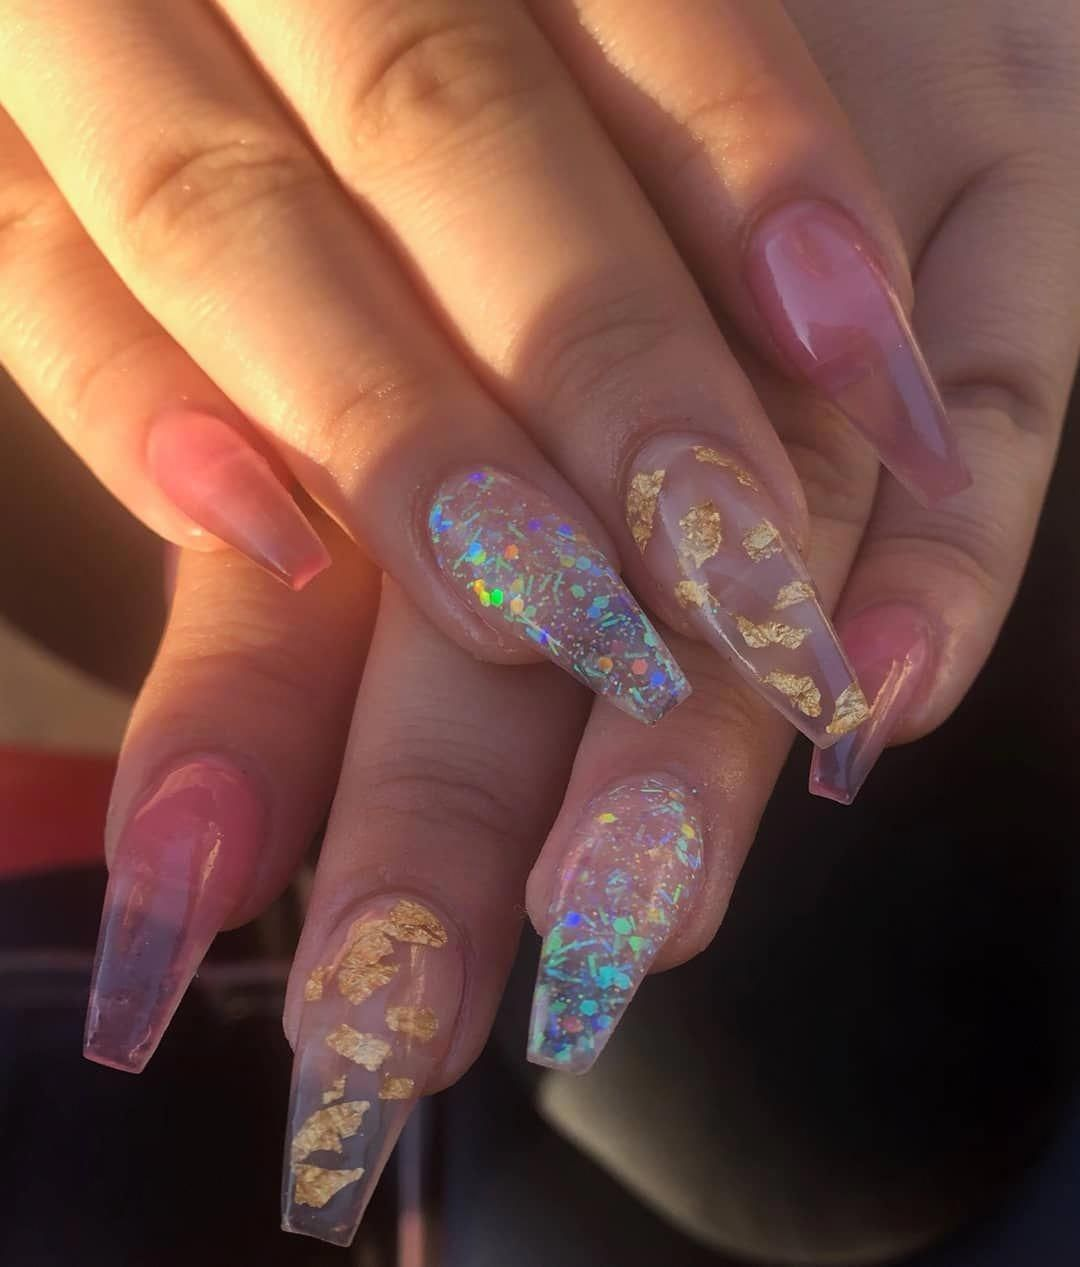 Skinny Coffin Coffinnails Longnails Brightnails Coloracrylic Acrylicnails Glamandglits Gorgeous Nails Jelly Nails Encapsulated Nails